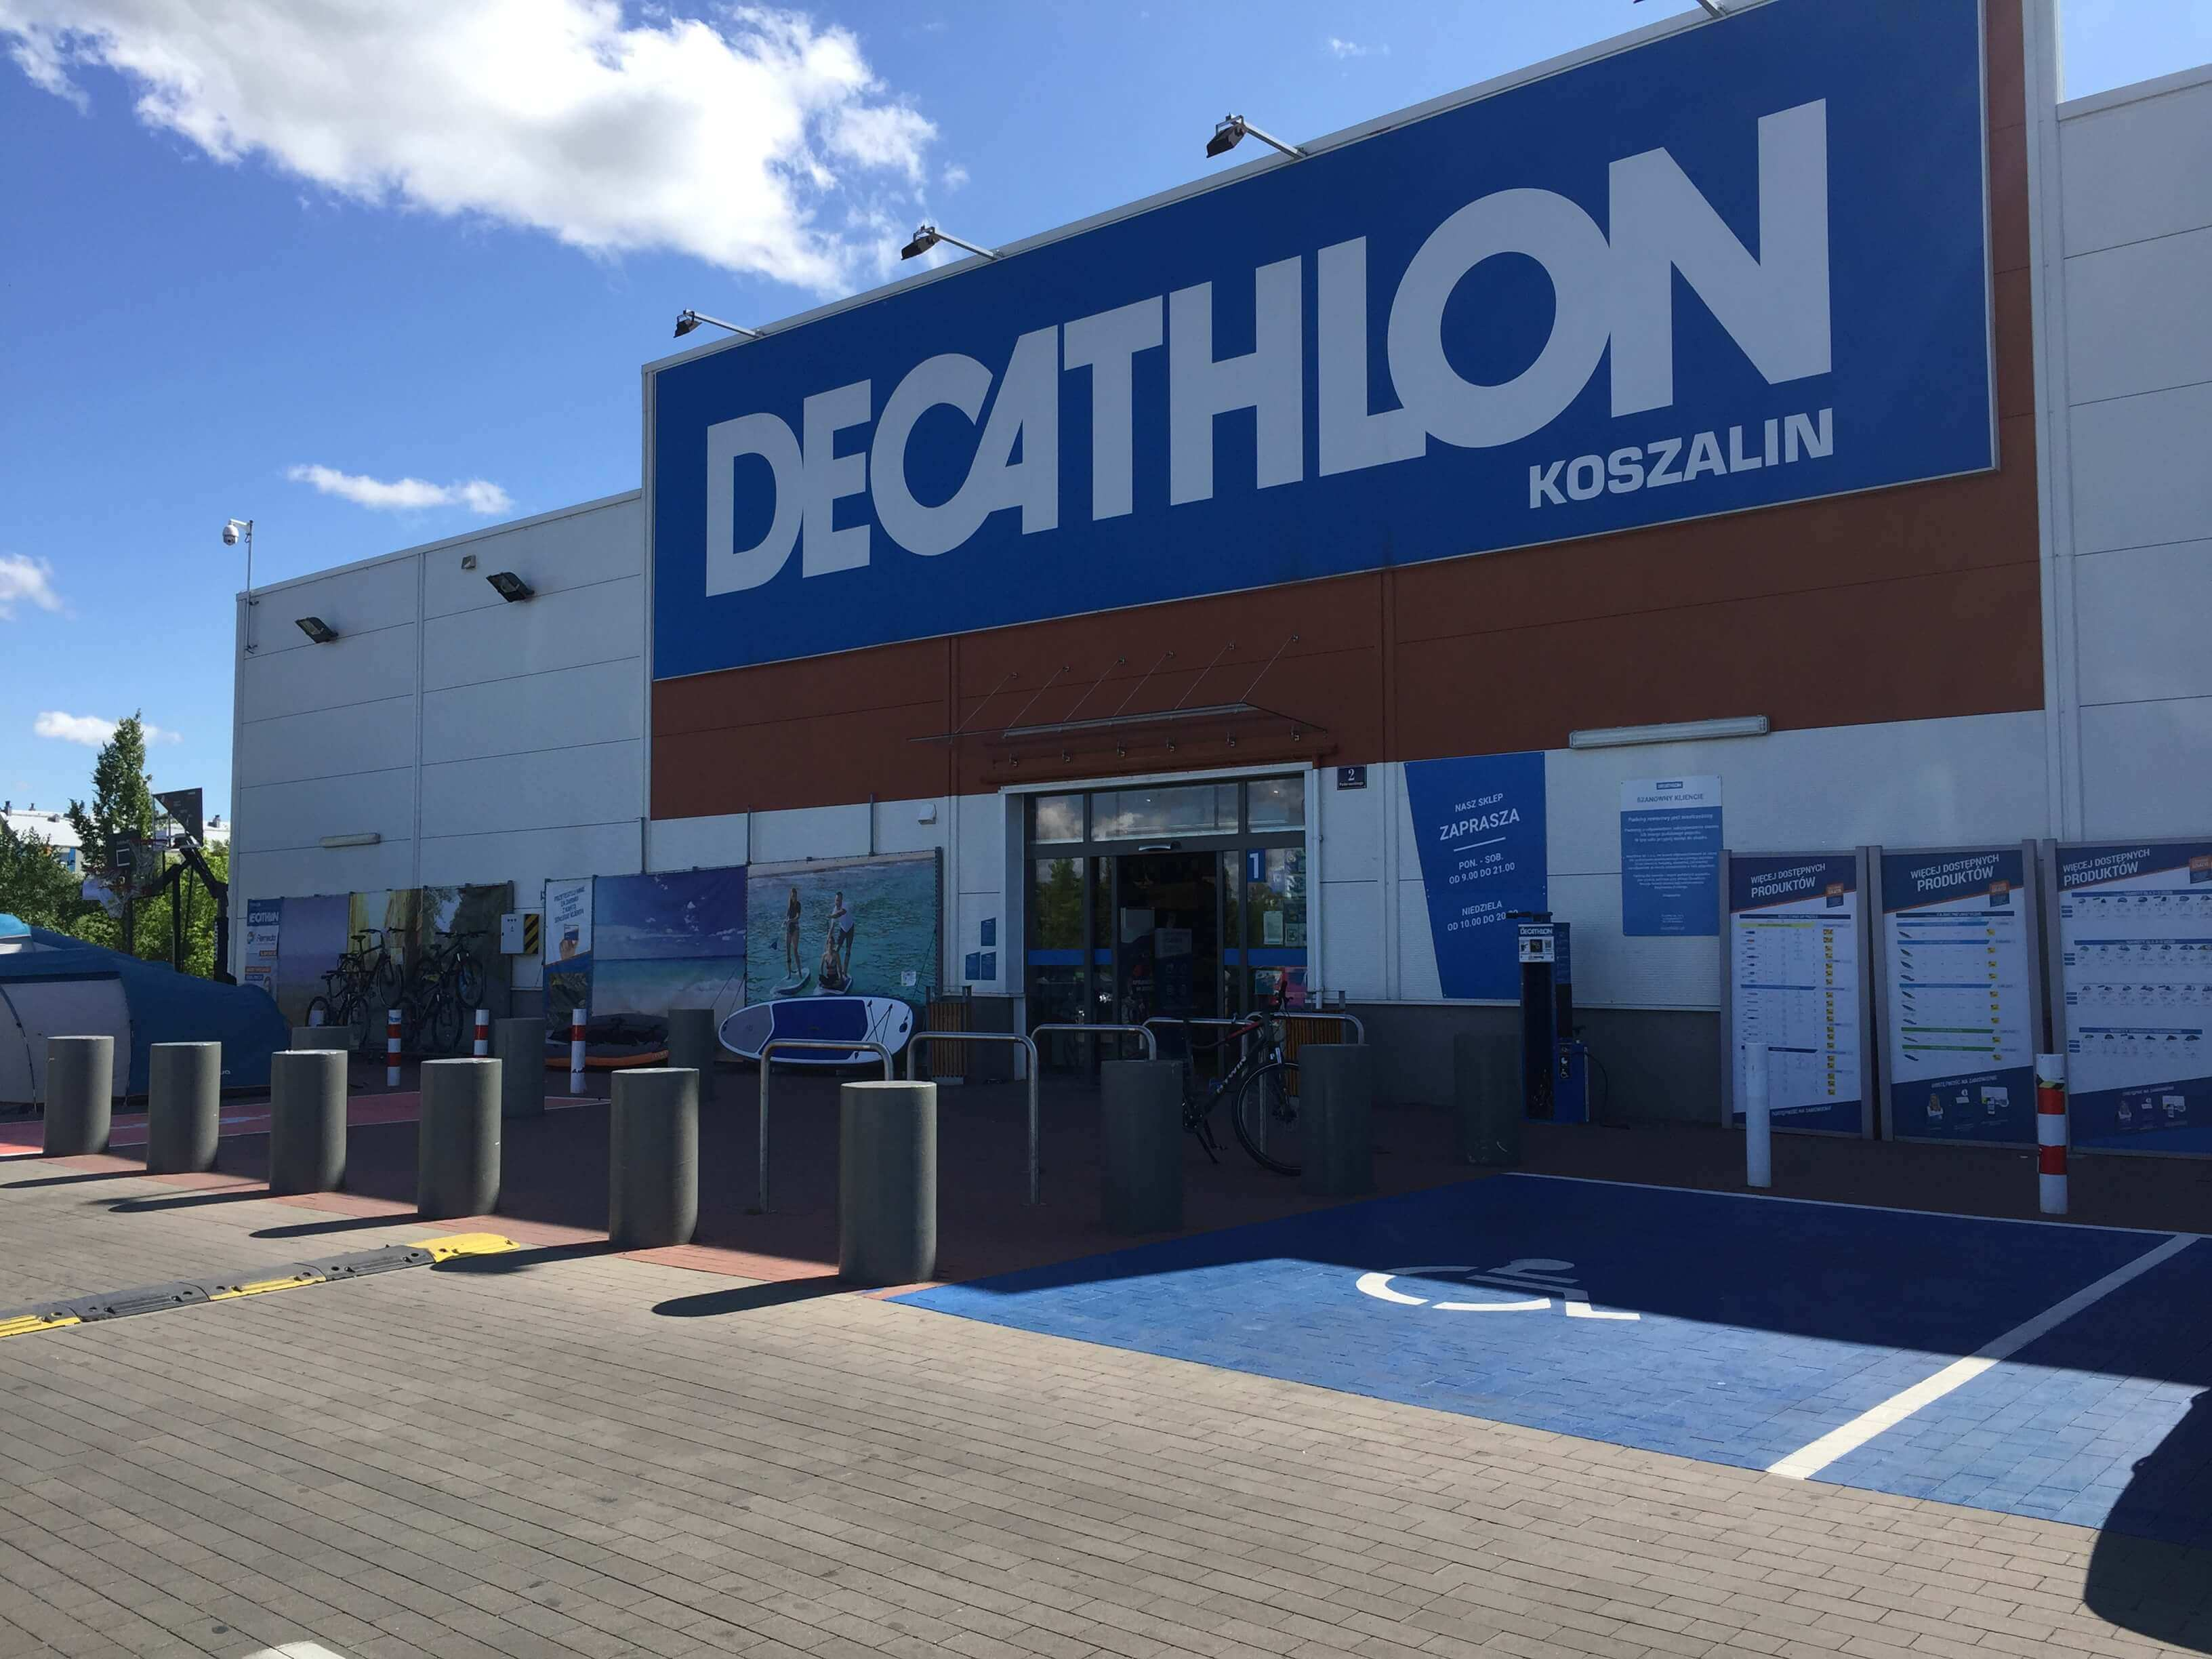 Decathlon Koszalin